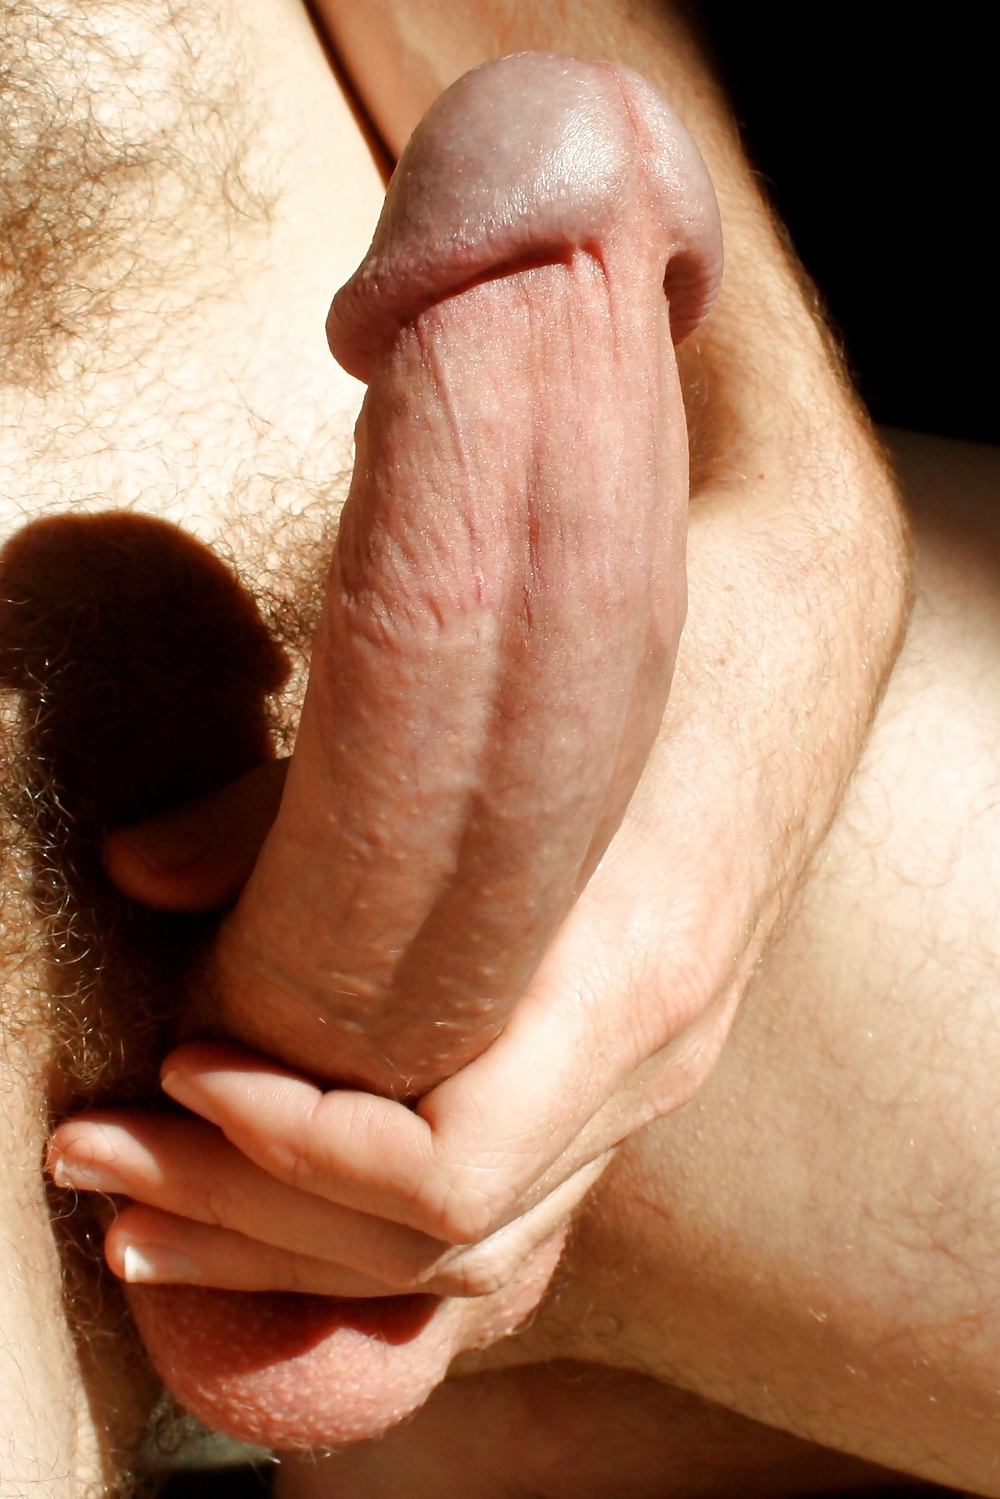 pics-of-lengthiest-dick